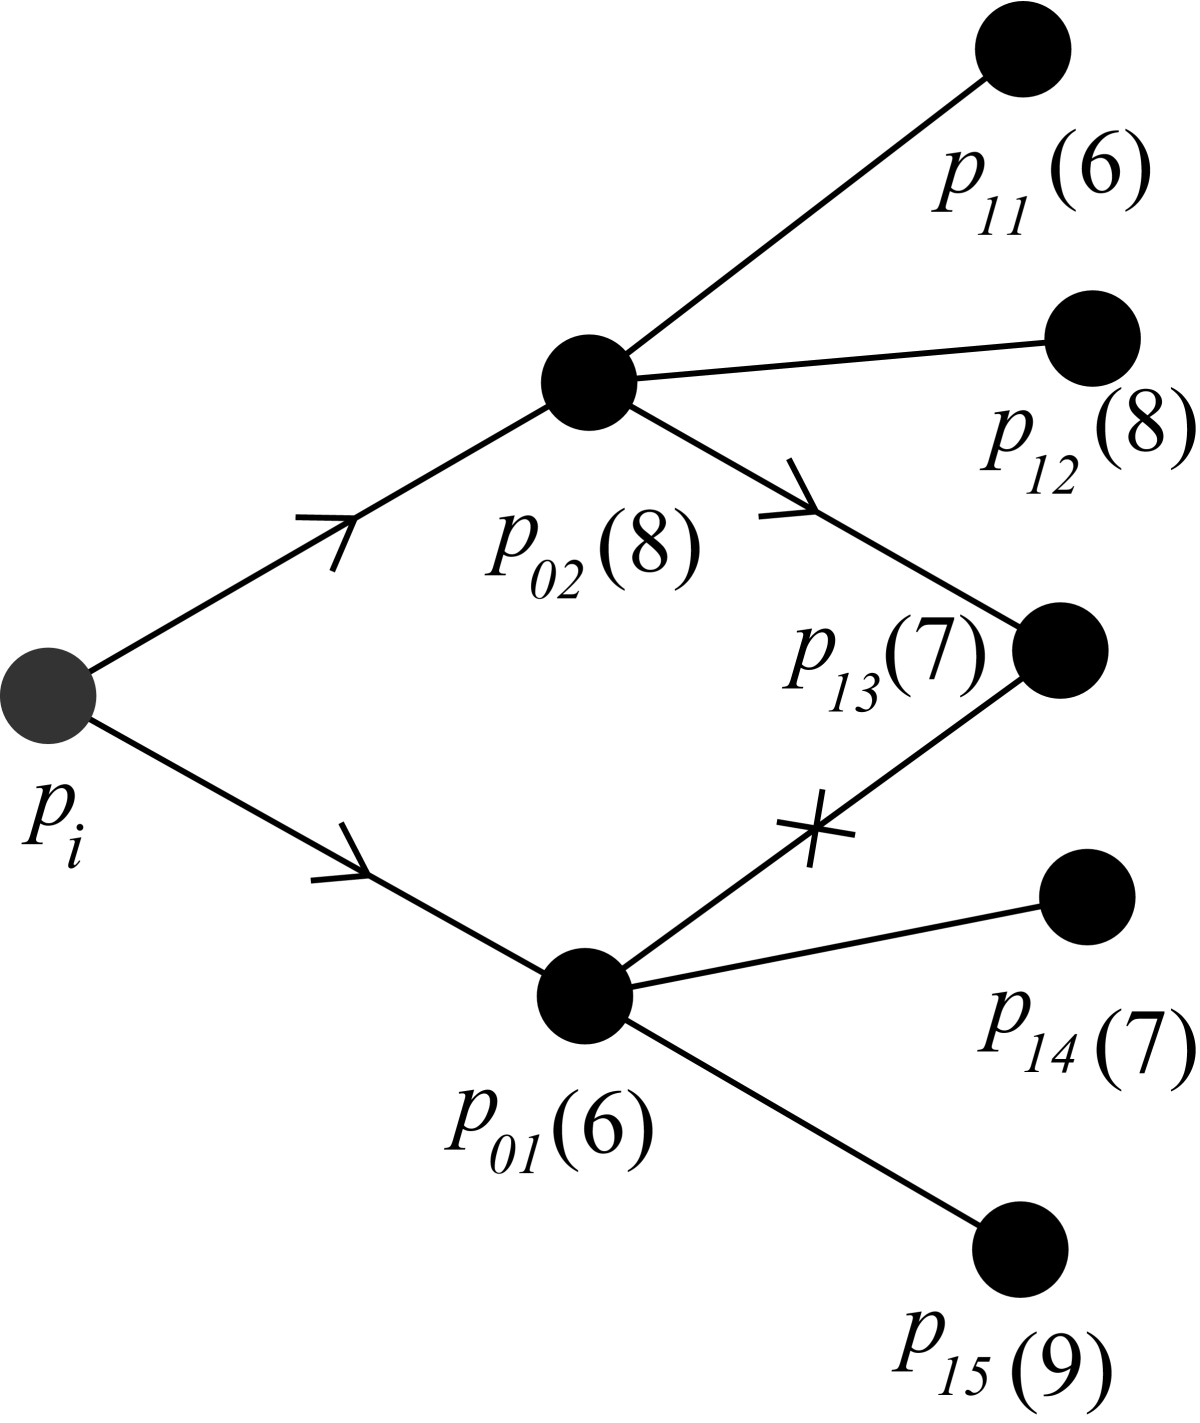 https://static-content.springer.com/image/art%3A10.1186%2F2192-1962-1-6/MediaObjects/13673_2011_Article_5_Fig11_HTML.jpg